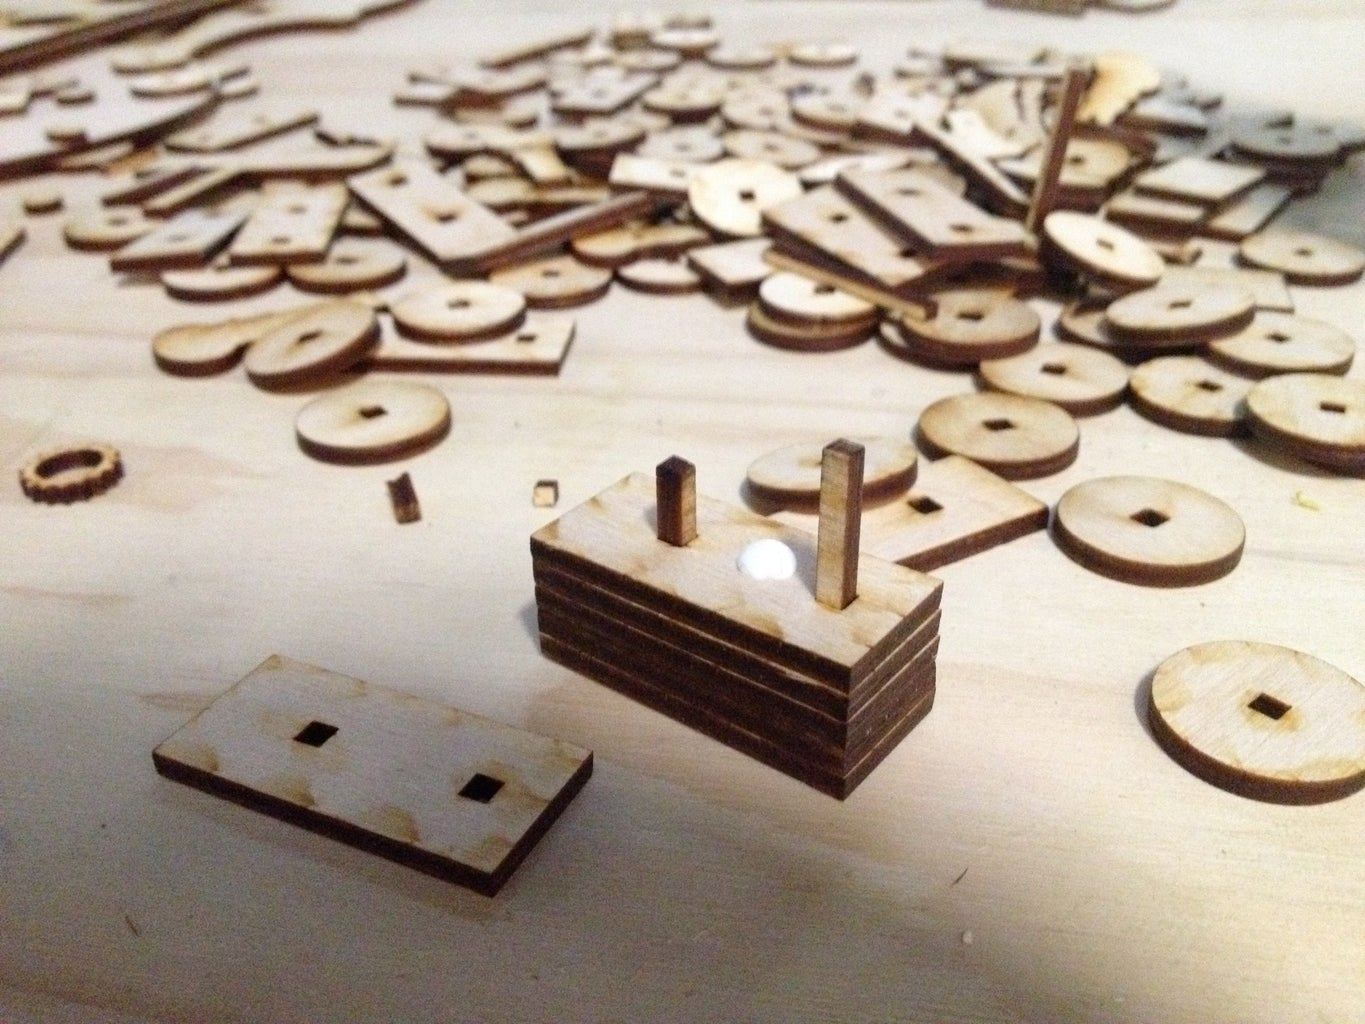 Glueing Small Parts